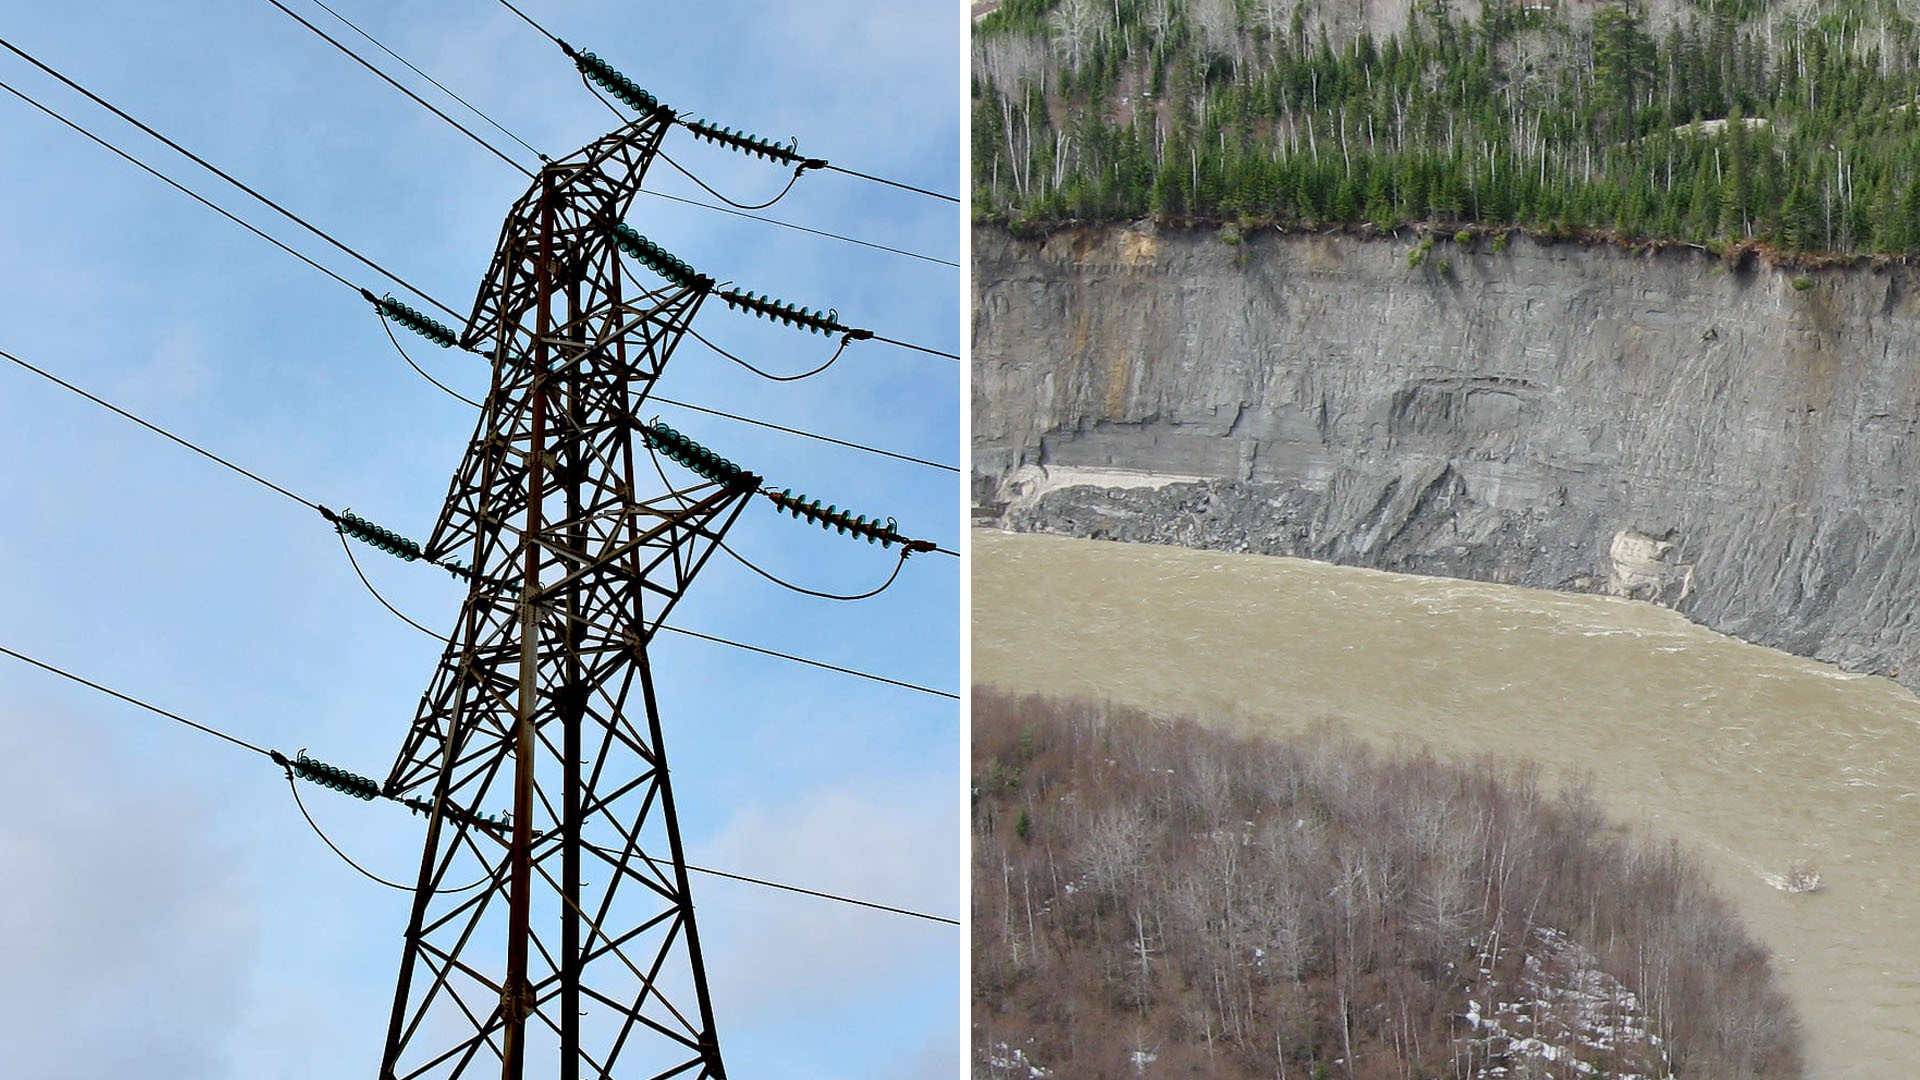 The hidden face of transportation lines | Opposition to the NECEC | Quebec Hydro Clash